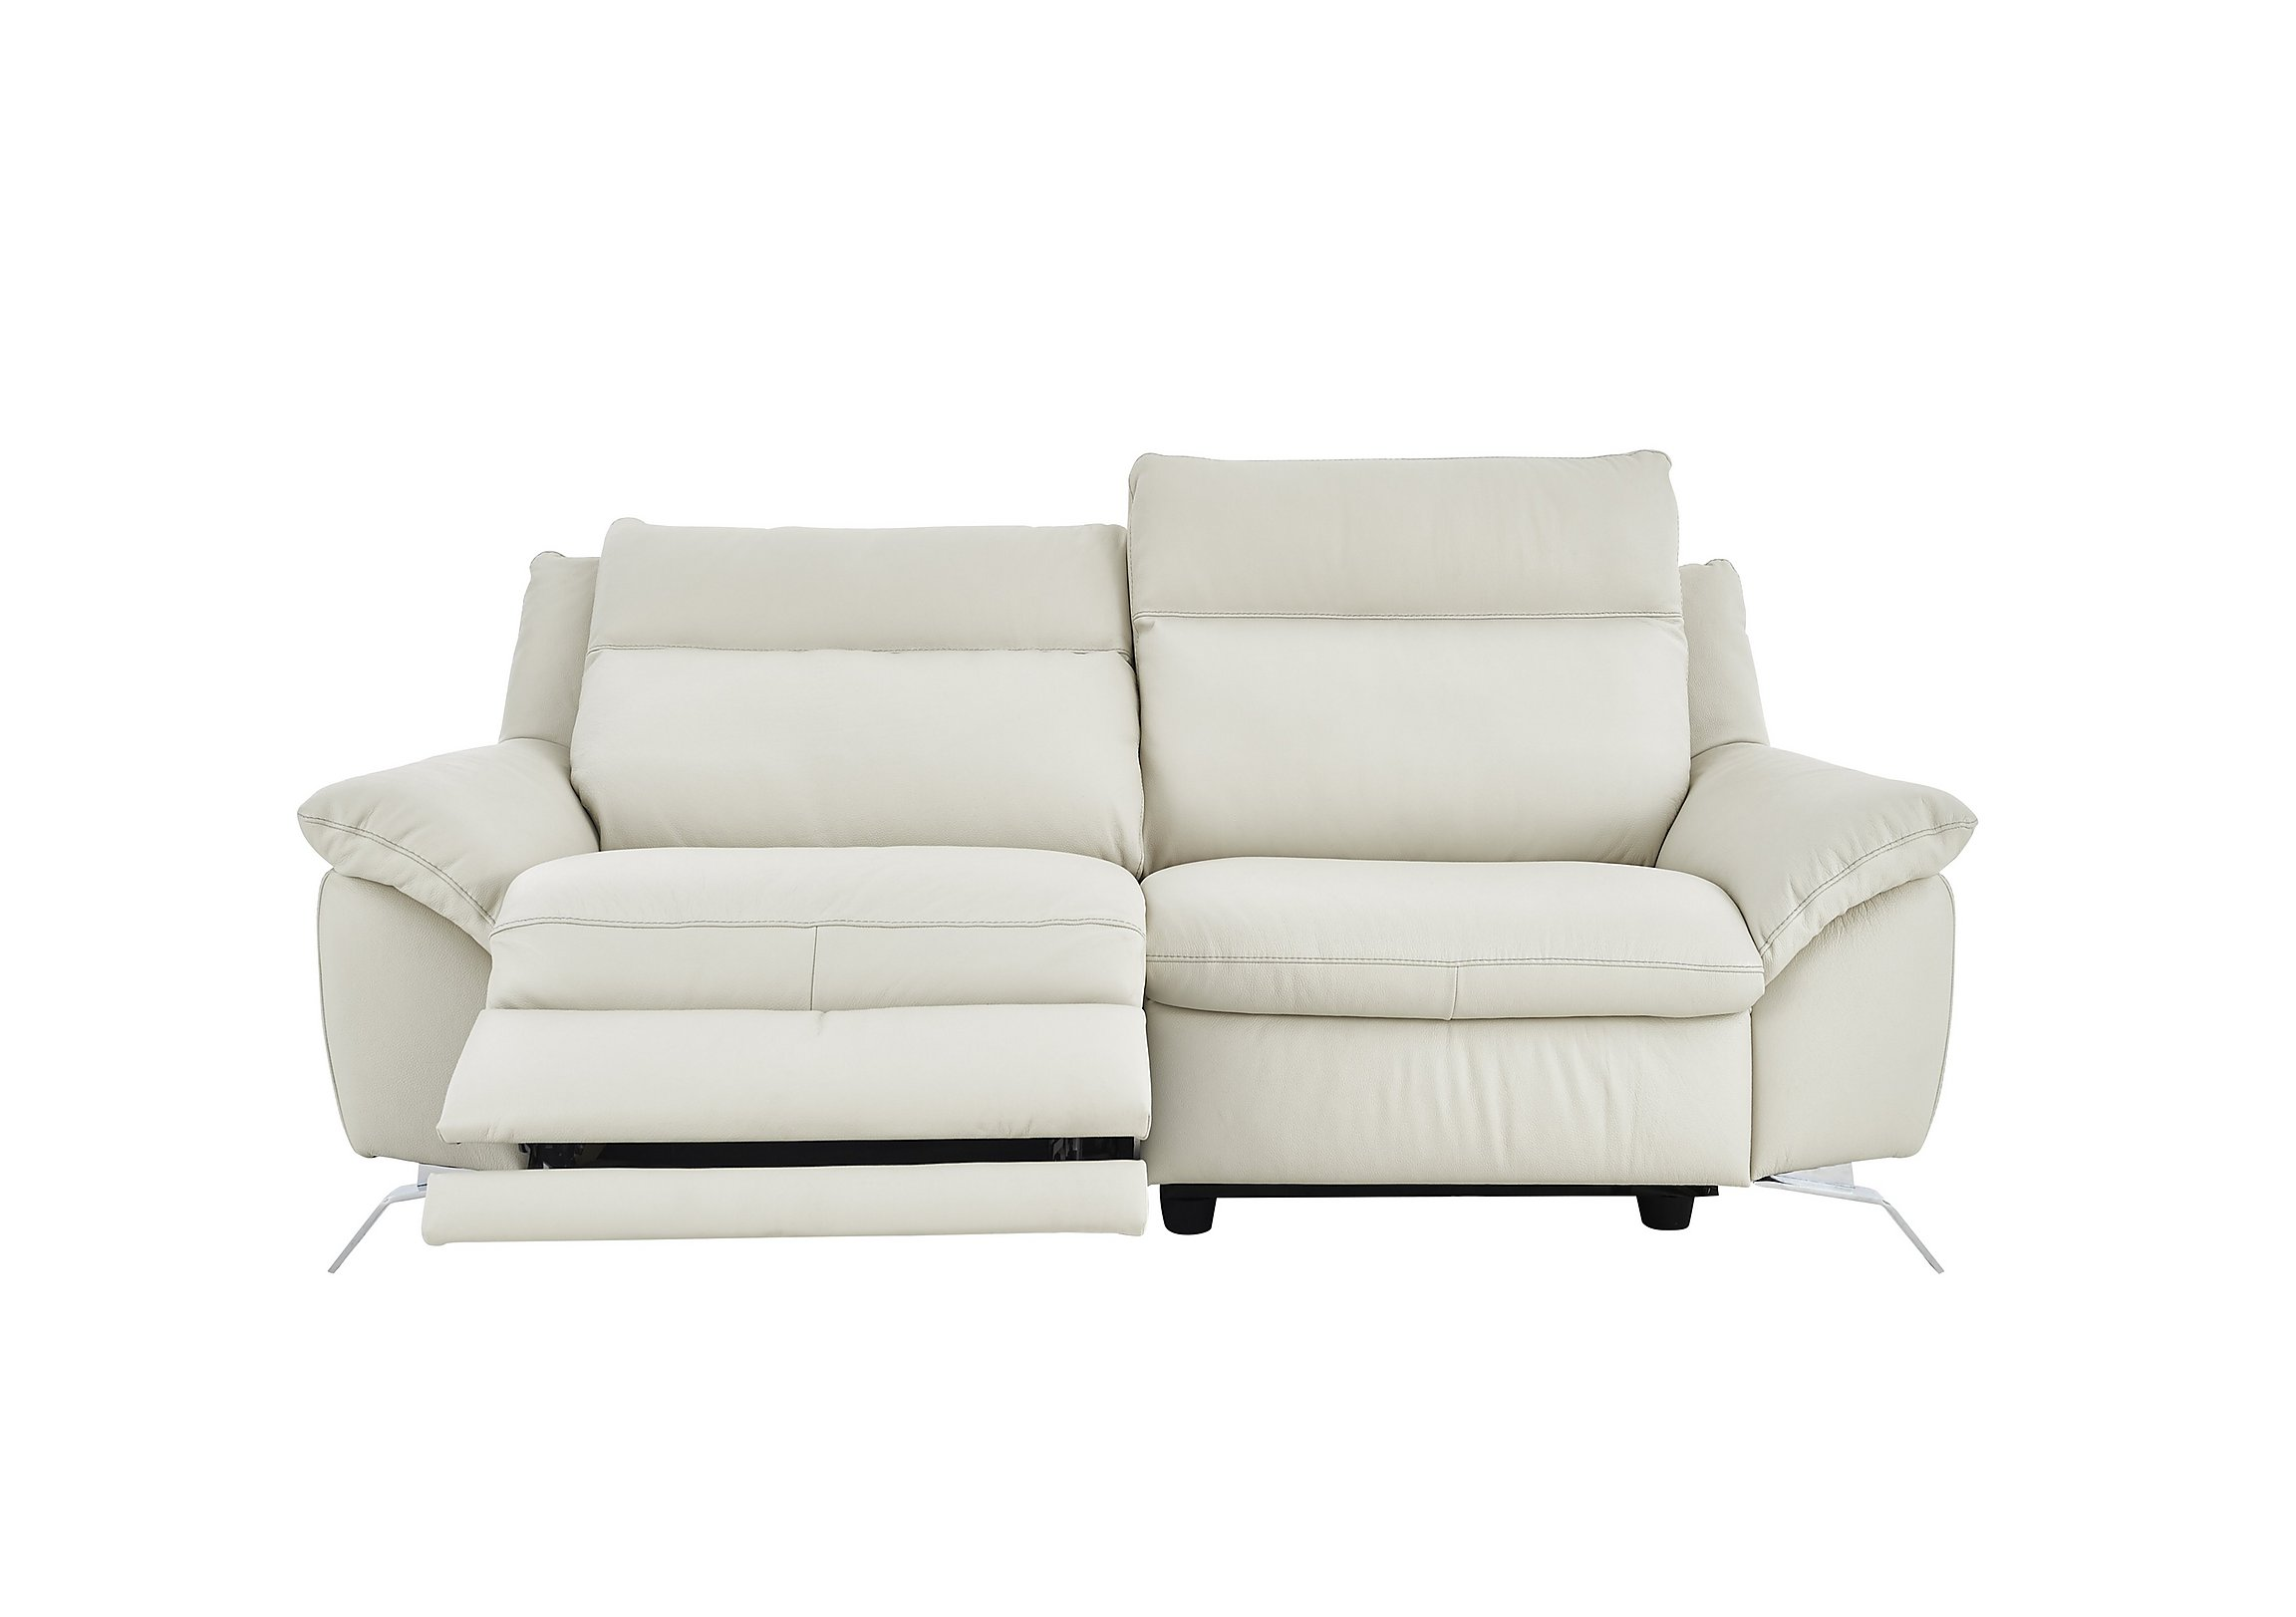 chair size large modern natuzzi sectional recliner italian white leather full of sofa blue